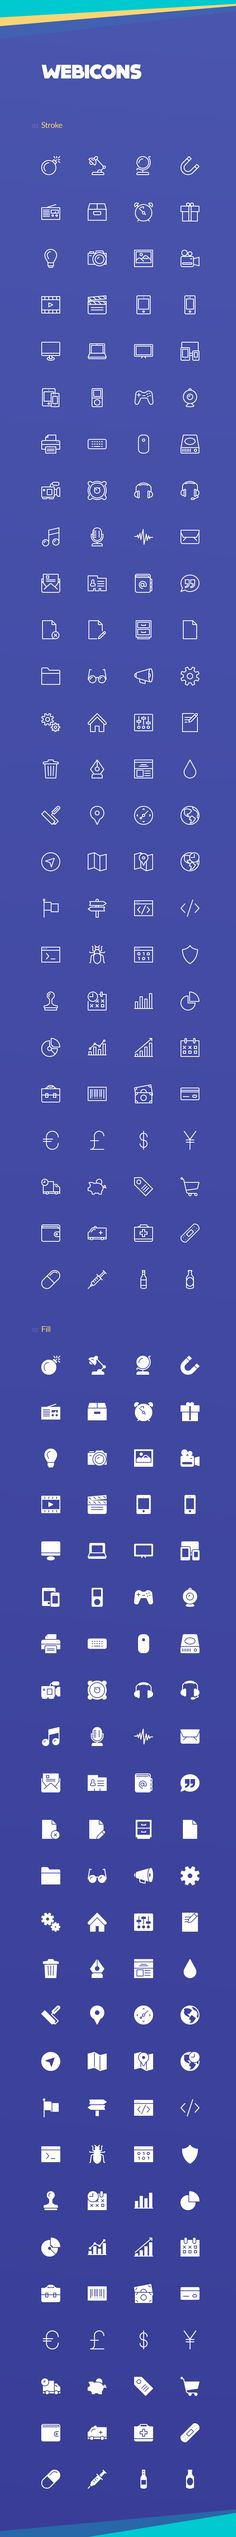 Webicons – 100 Stroke & Fill Icons on Behance Web Design, Tool Design, Web Icon Vector, Simple Icon, Graphic Artwork, Branding, Layout, Small Icons, Icon Font